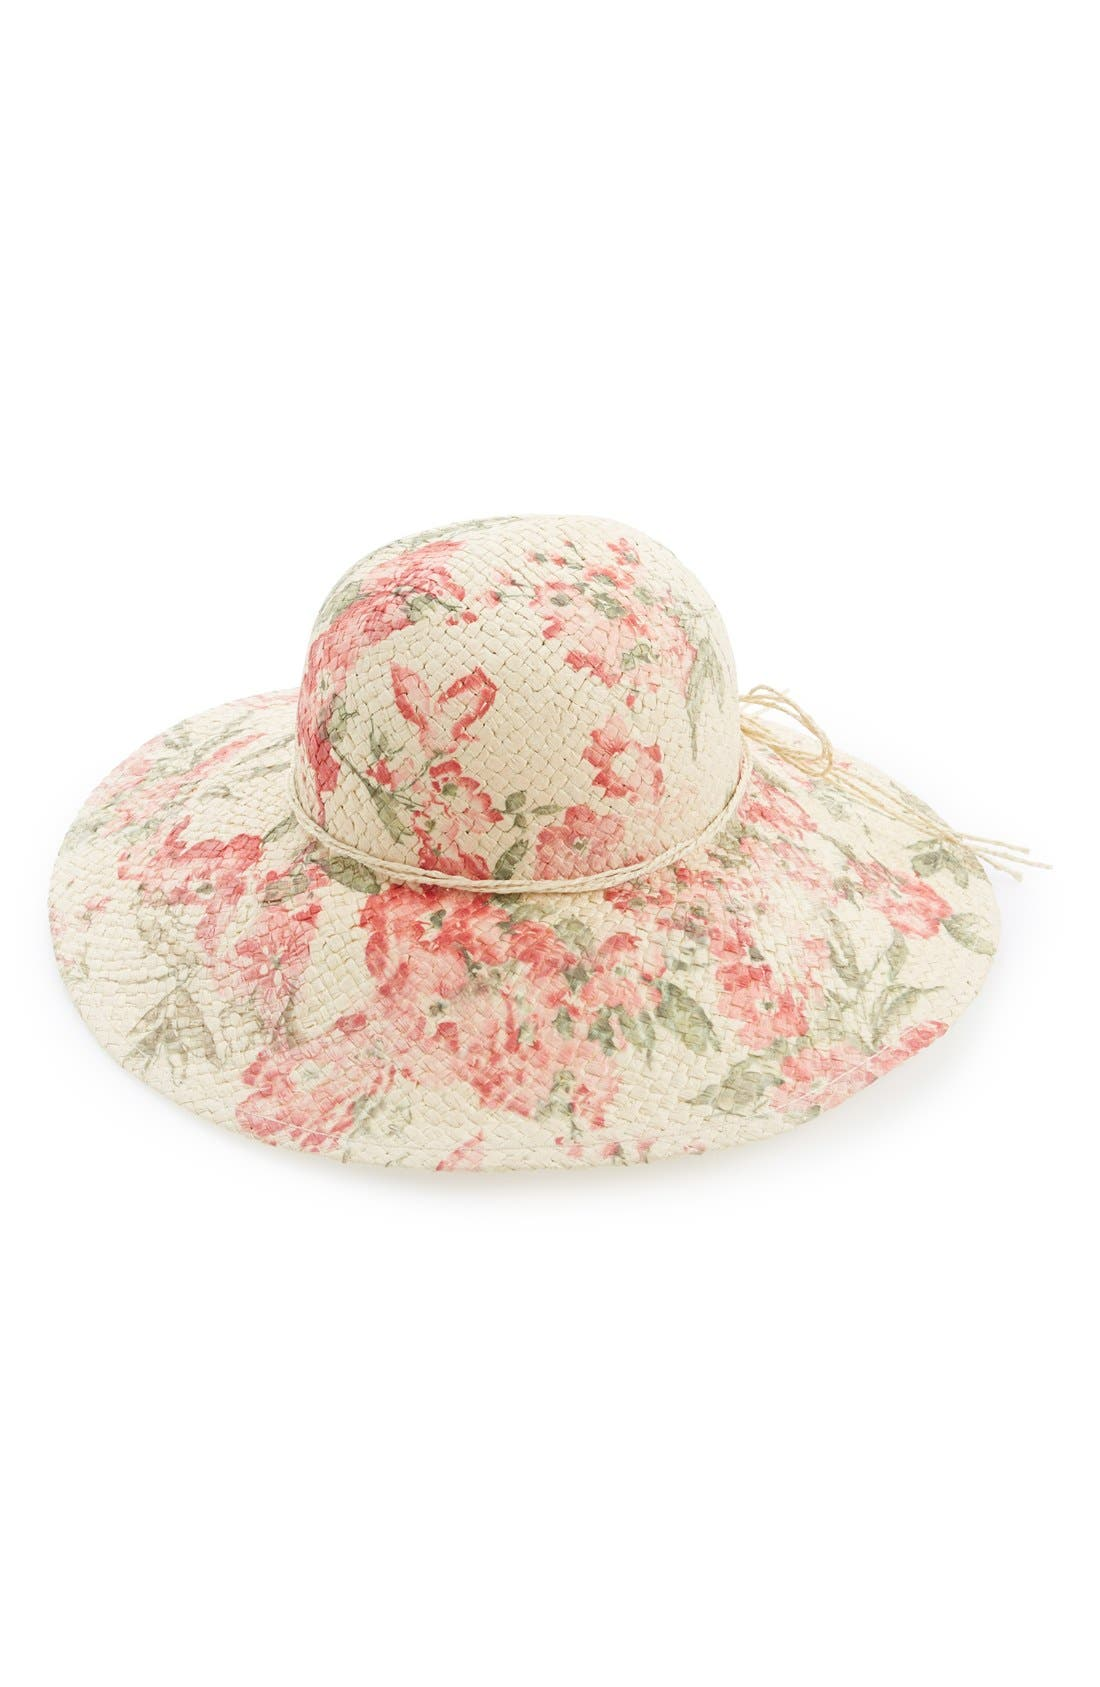 Main Image - David & Young Floral Print Floppy Straw Hat